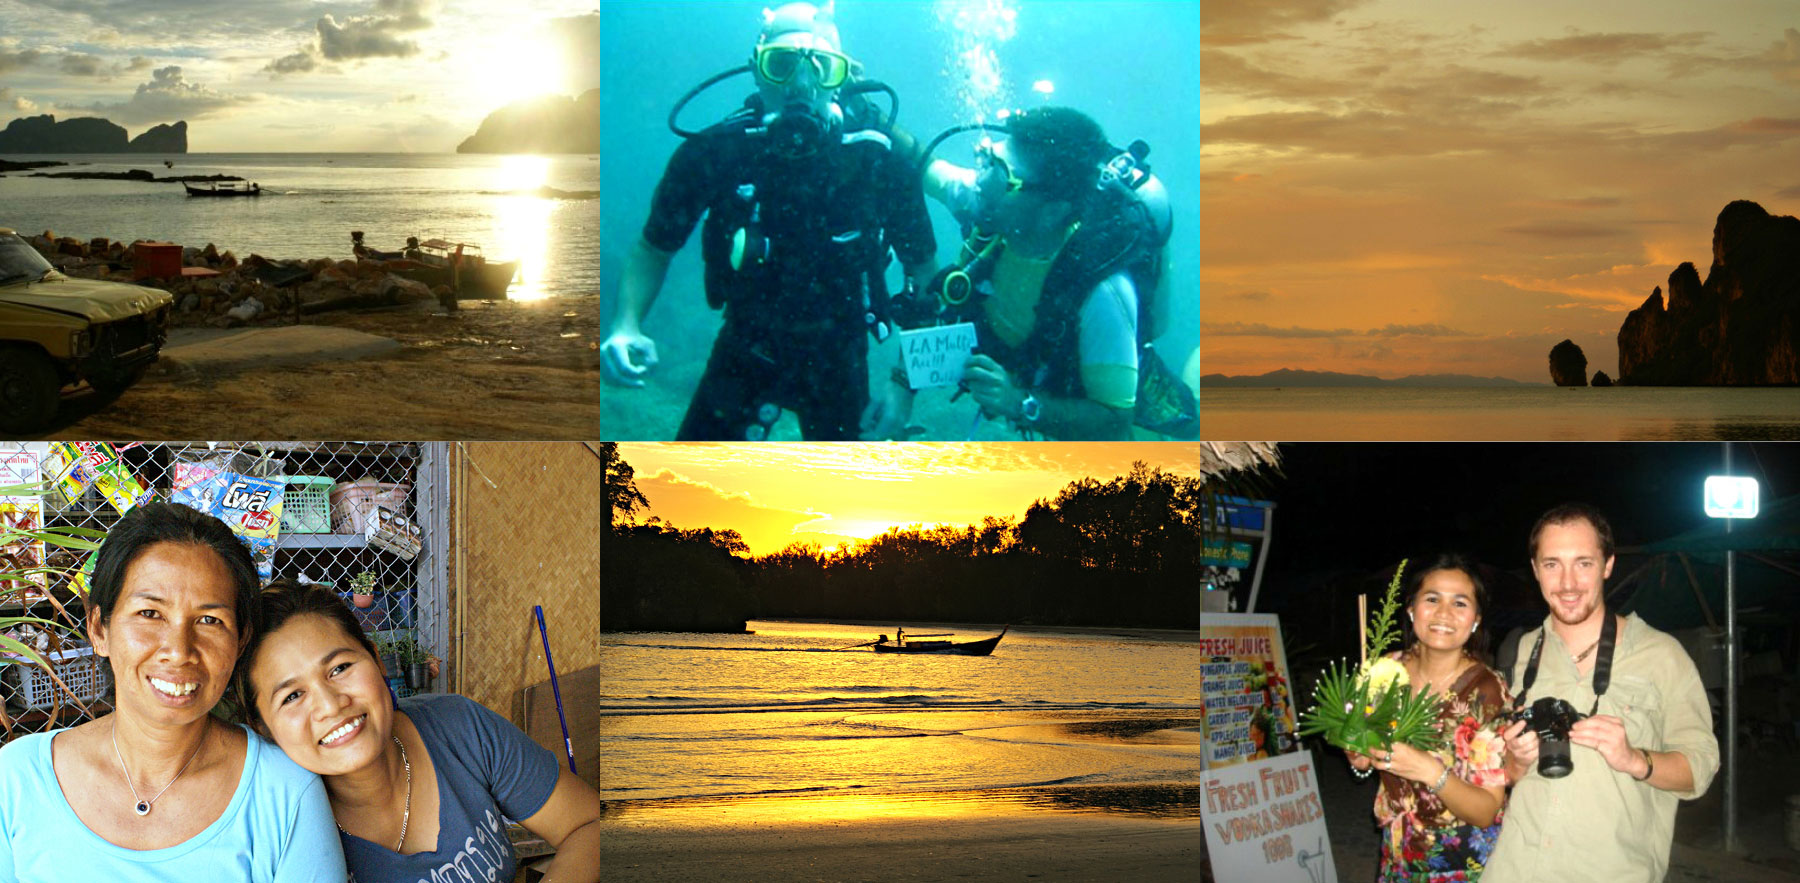 Sunset, birthday celebration while diving, Pi Moss with Song, Song and me during Loy krathung festival